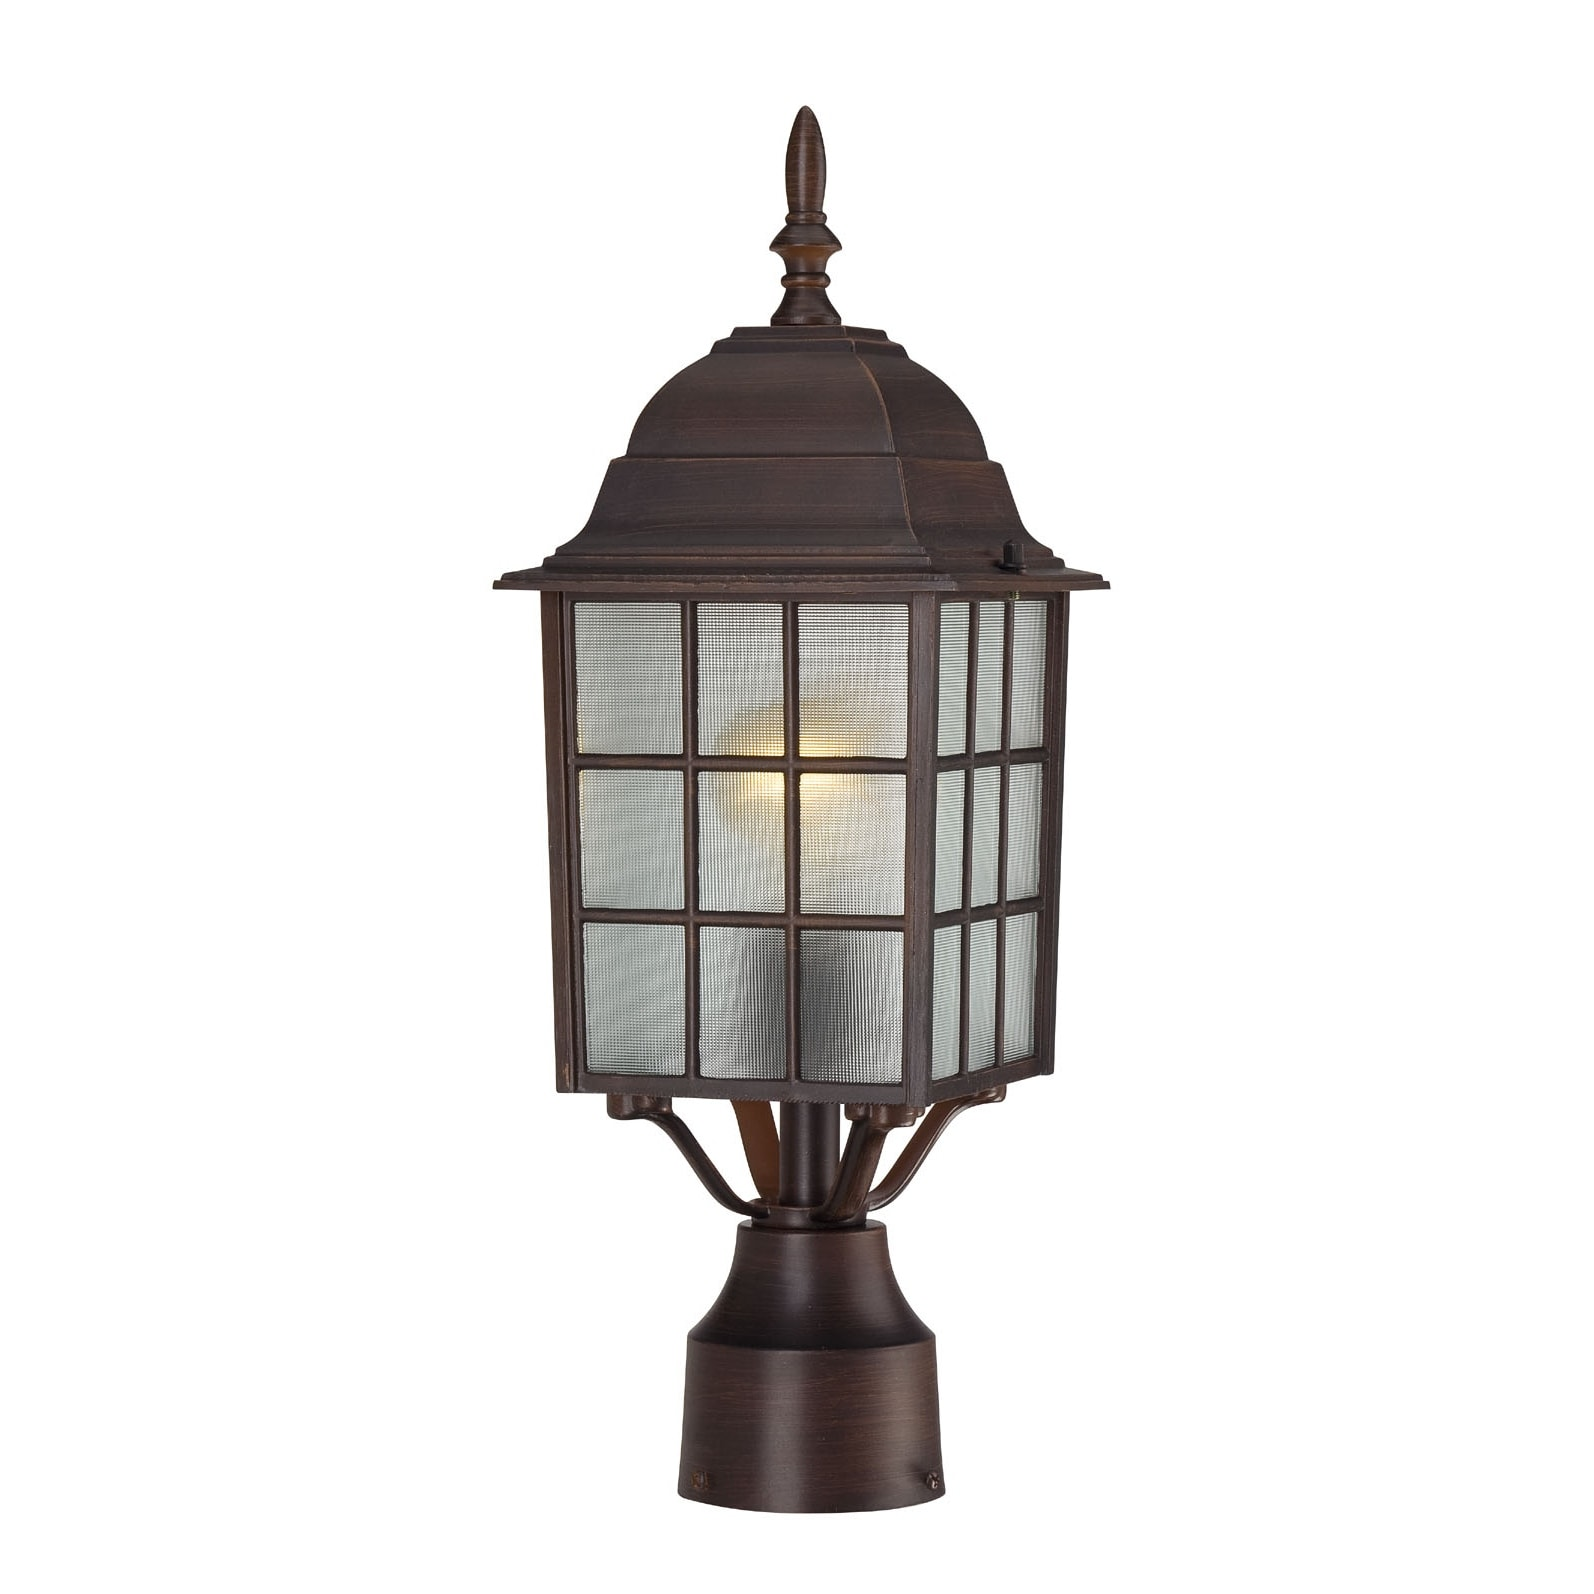 Shop Nuvo 39 Adams 39 1 Light Rustic Bronze 17 Inch Post Fixture Free Shipping On Orders Over 45